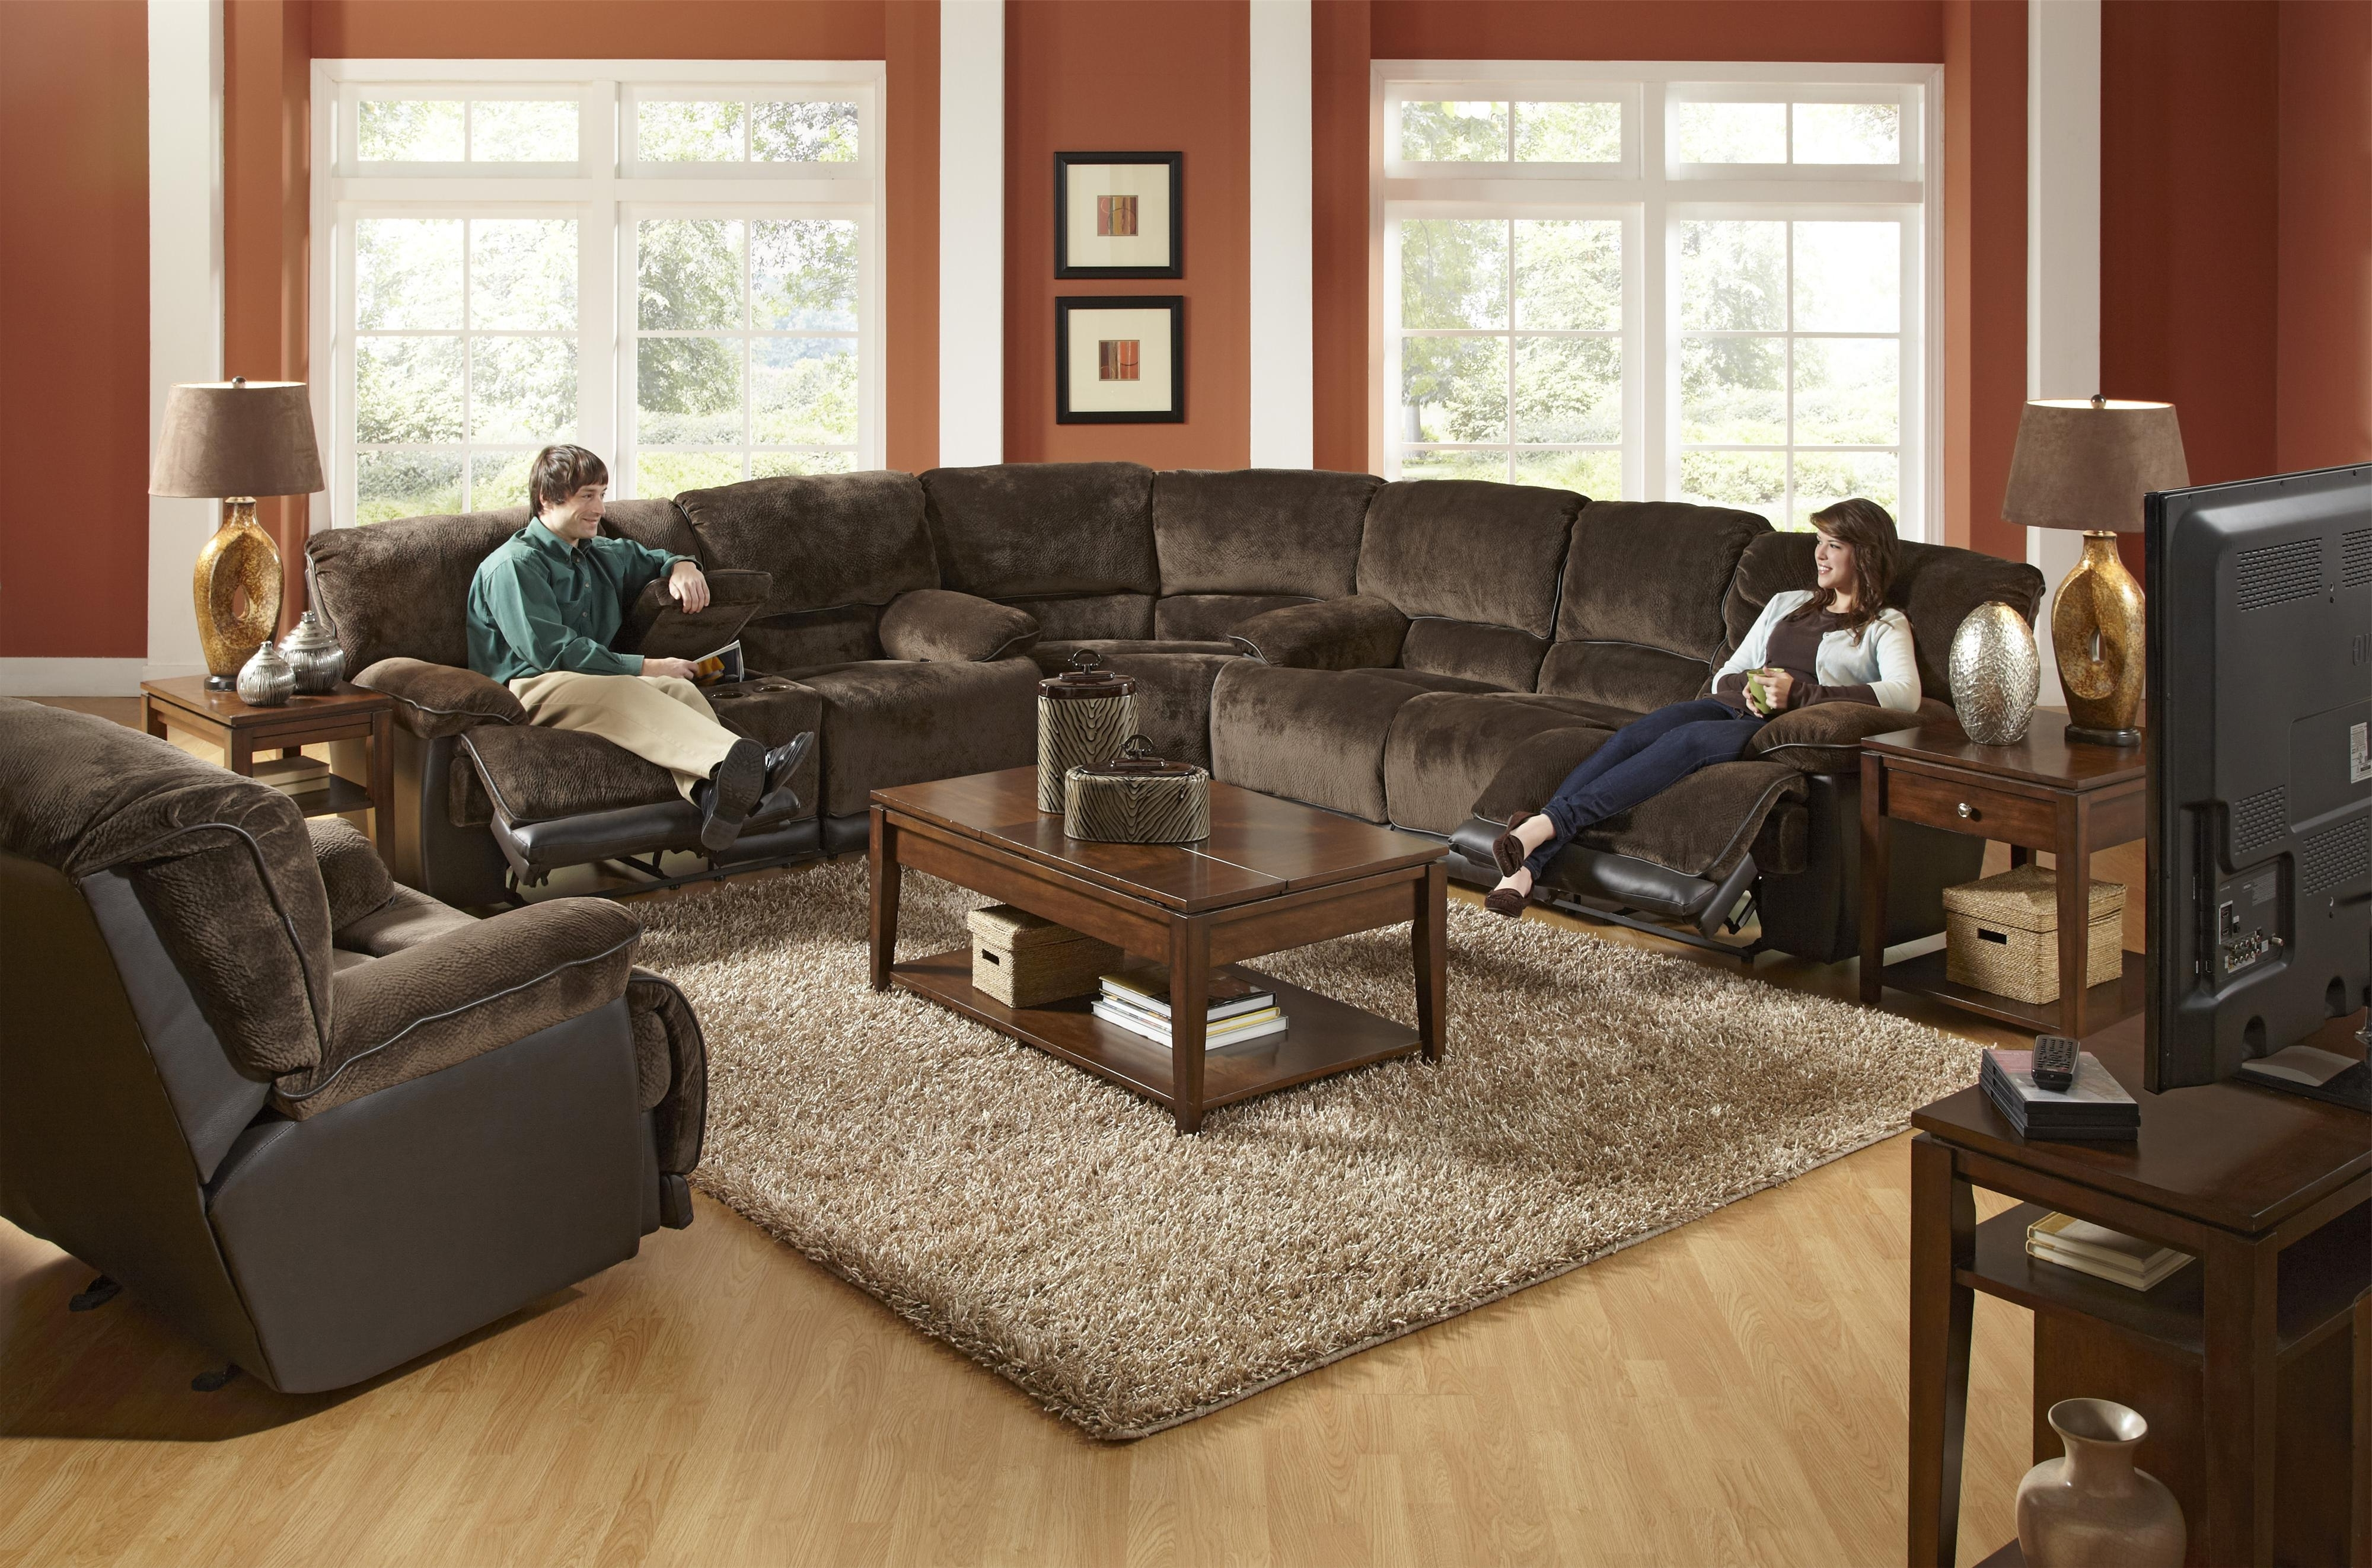 Favorite A Reclining Sectional In The Transitional Style! Catnapper With Regard To Reclining Sofas With Chaise (View 13 of 15)